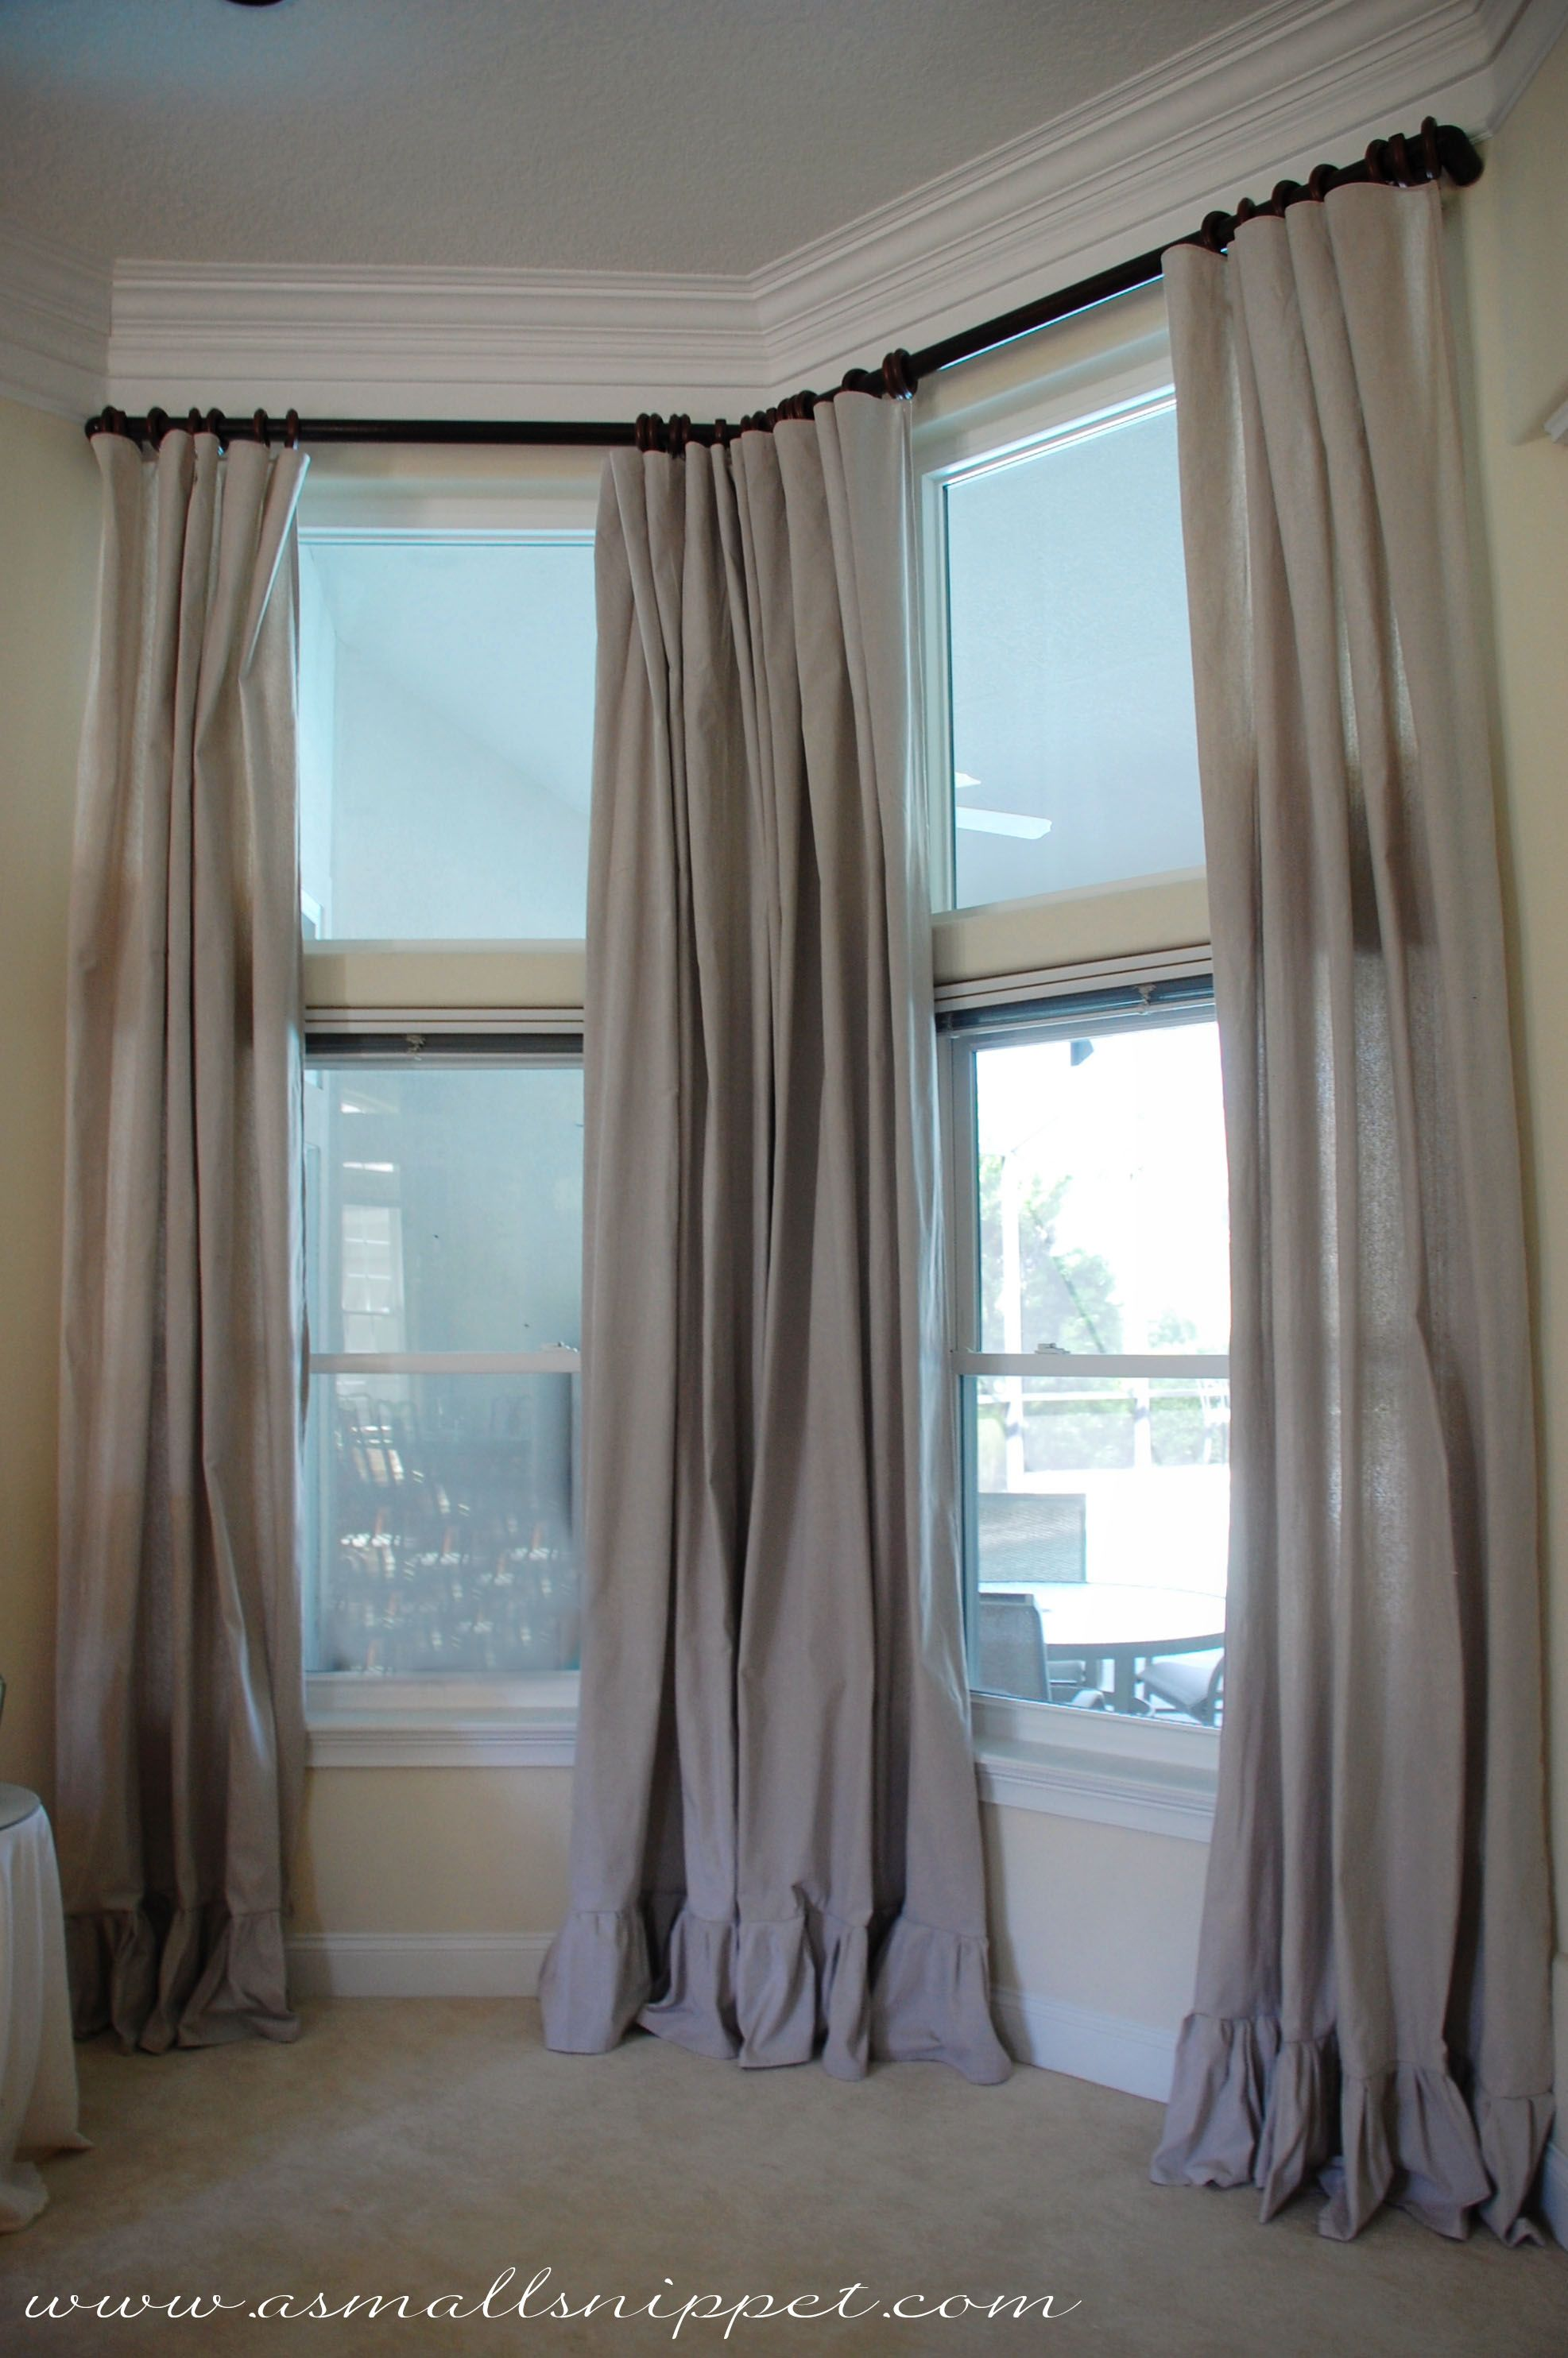 Drop Cloth Curtains Lowes Pin By Marla Sargent Ogilvie On Craft Ideas Drop Cloth Curtains